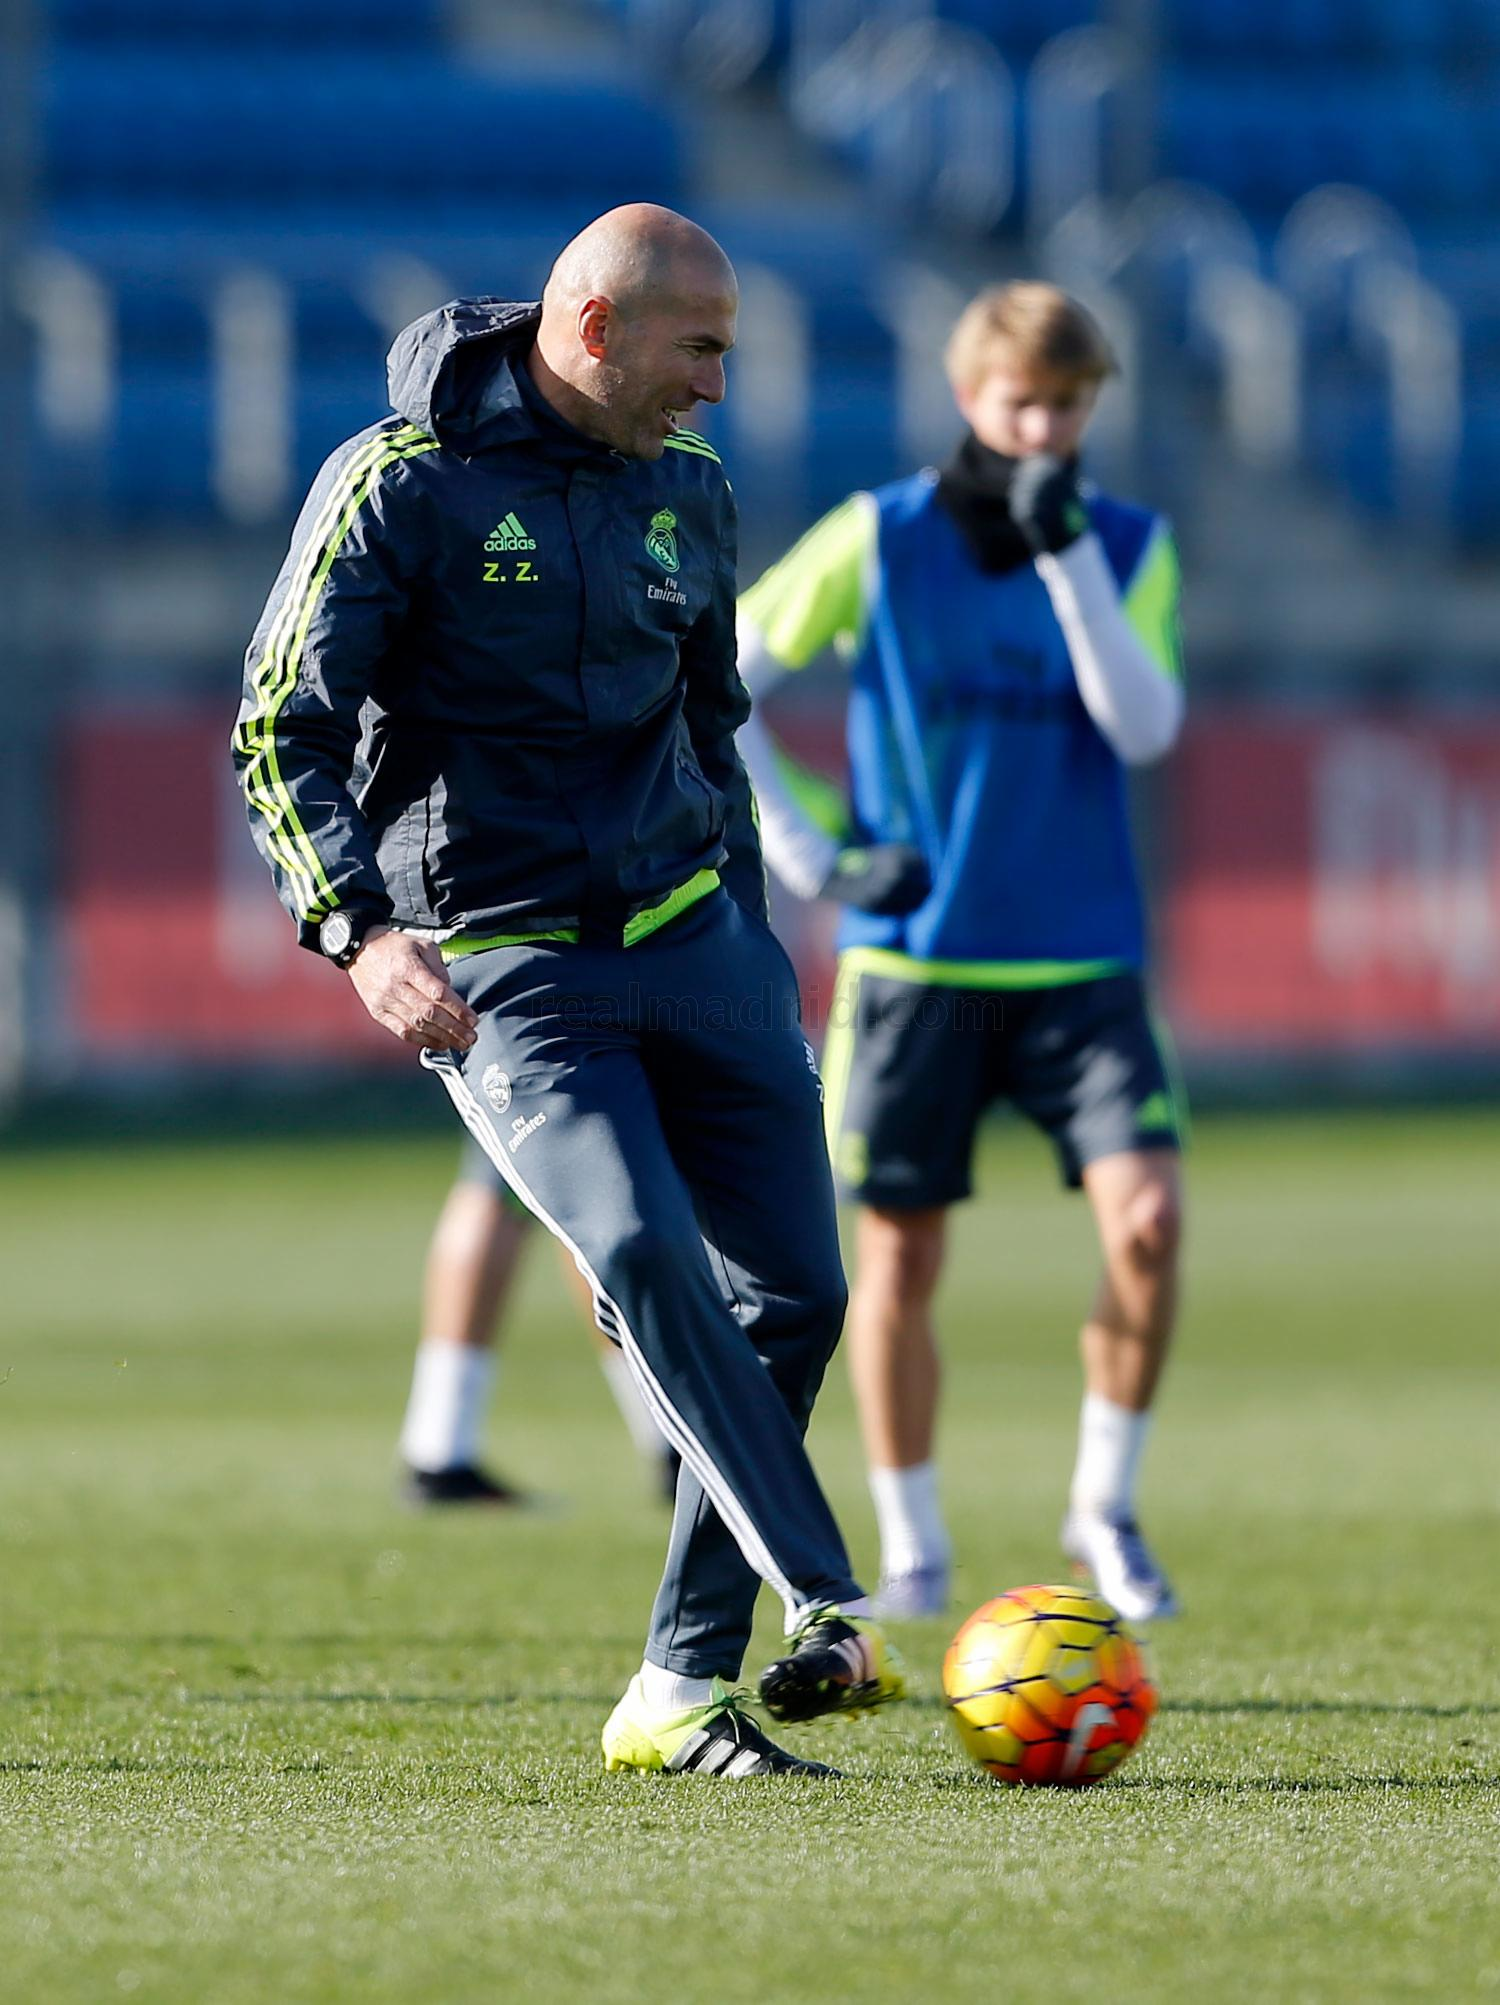 Real Madrid - Entrenamiento del Real Madrid - 13-01-2016